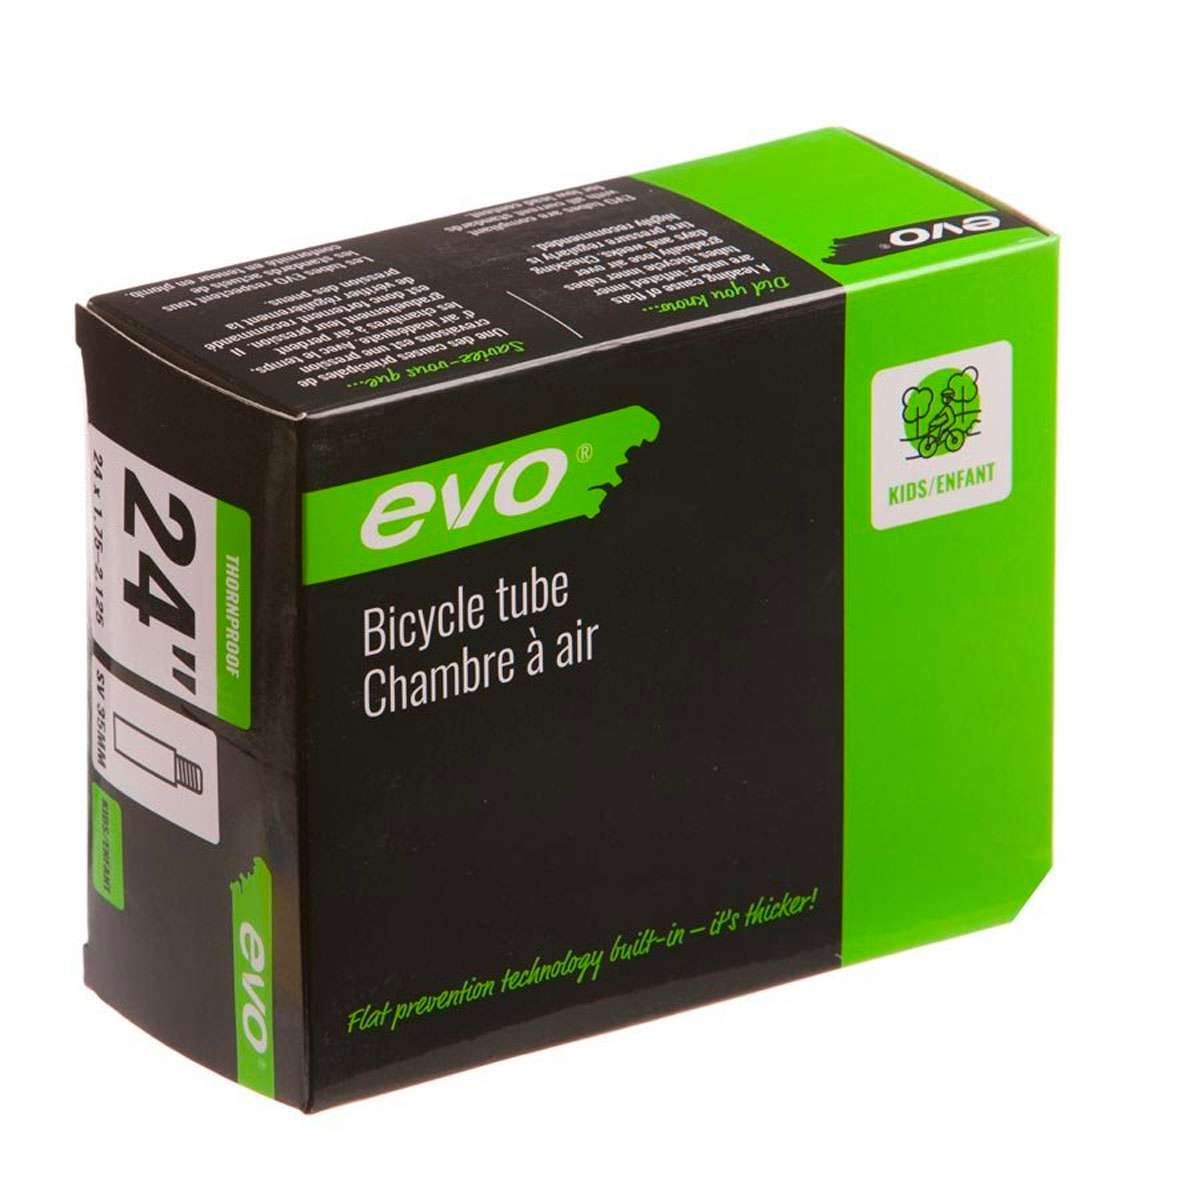 Evo Thorn Resistant Schrader Valve Bicycle Tube - 24in x 1.75-2.125 - 35mm - 20174-02